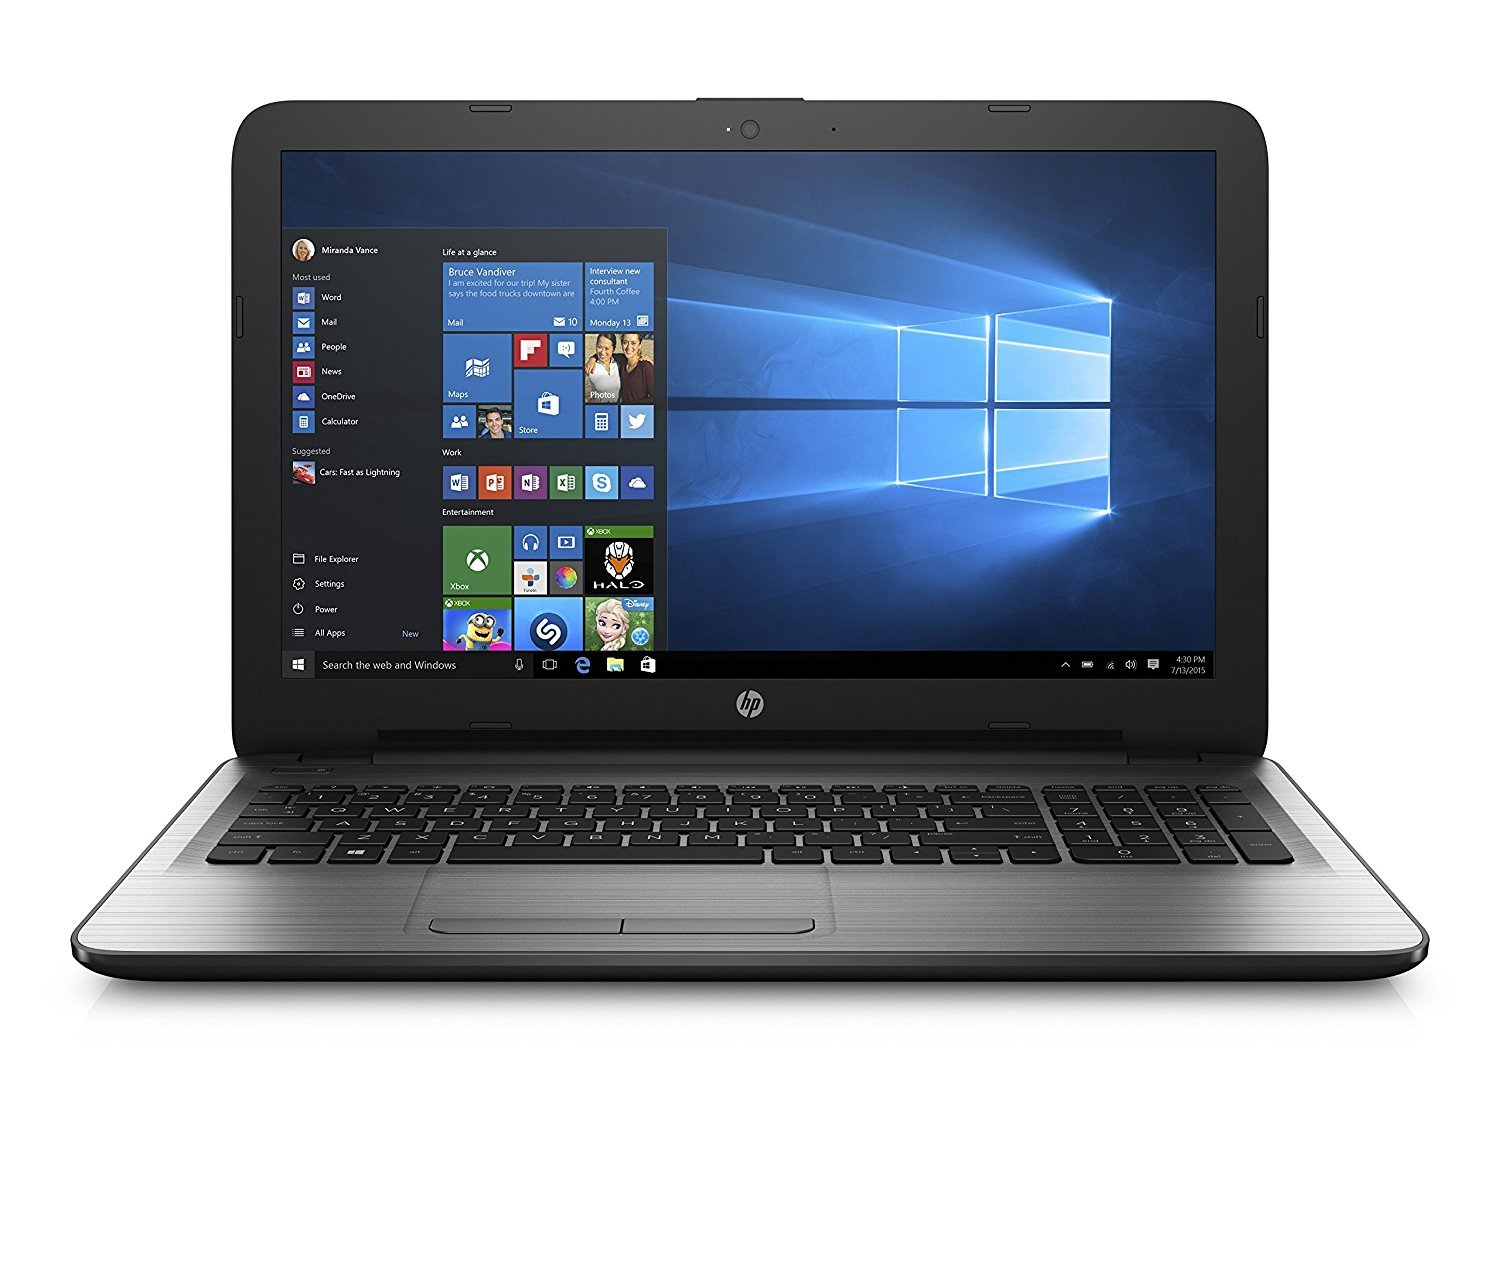 HP ENVY 15-ba040nr 15.6'' Laptop, touch screen, Windows 10 Home (Certified Refurbished) by HP